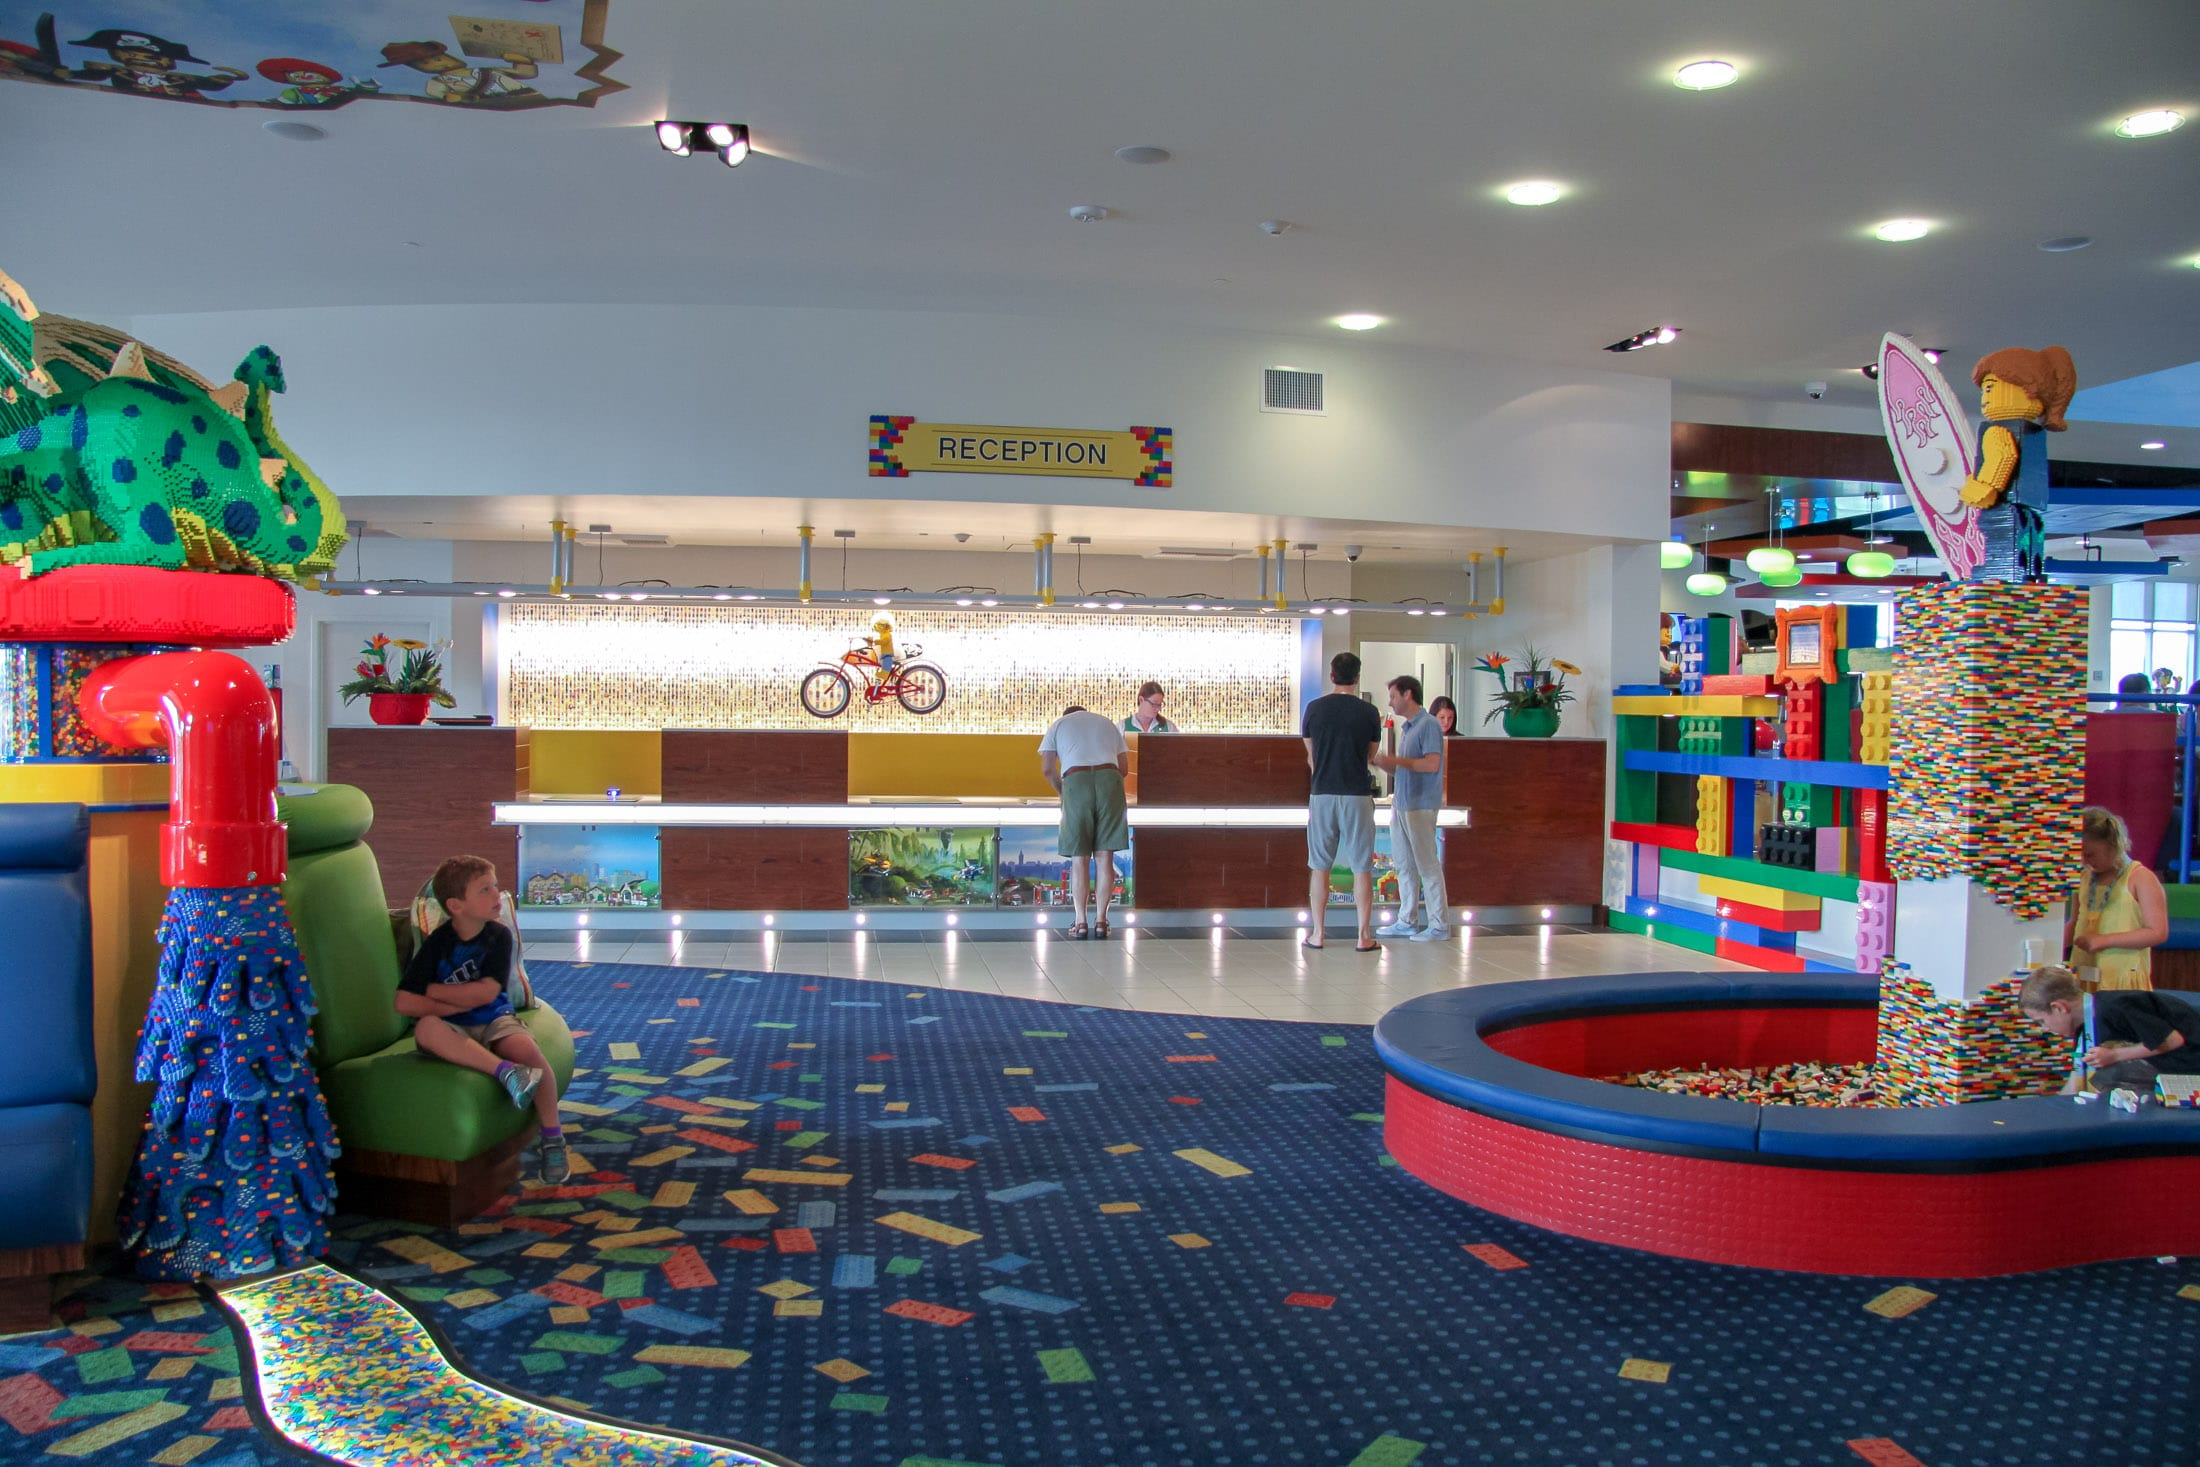 LEGO pits and more in the LEGOLAND Hotel lobby